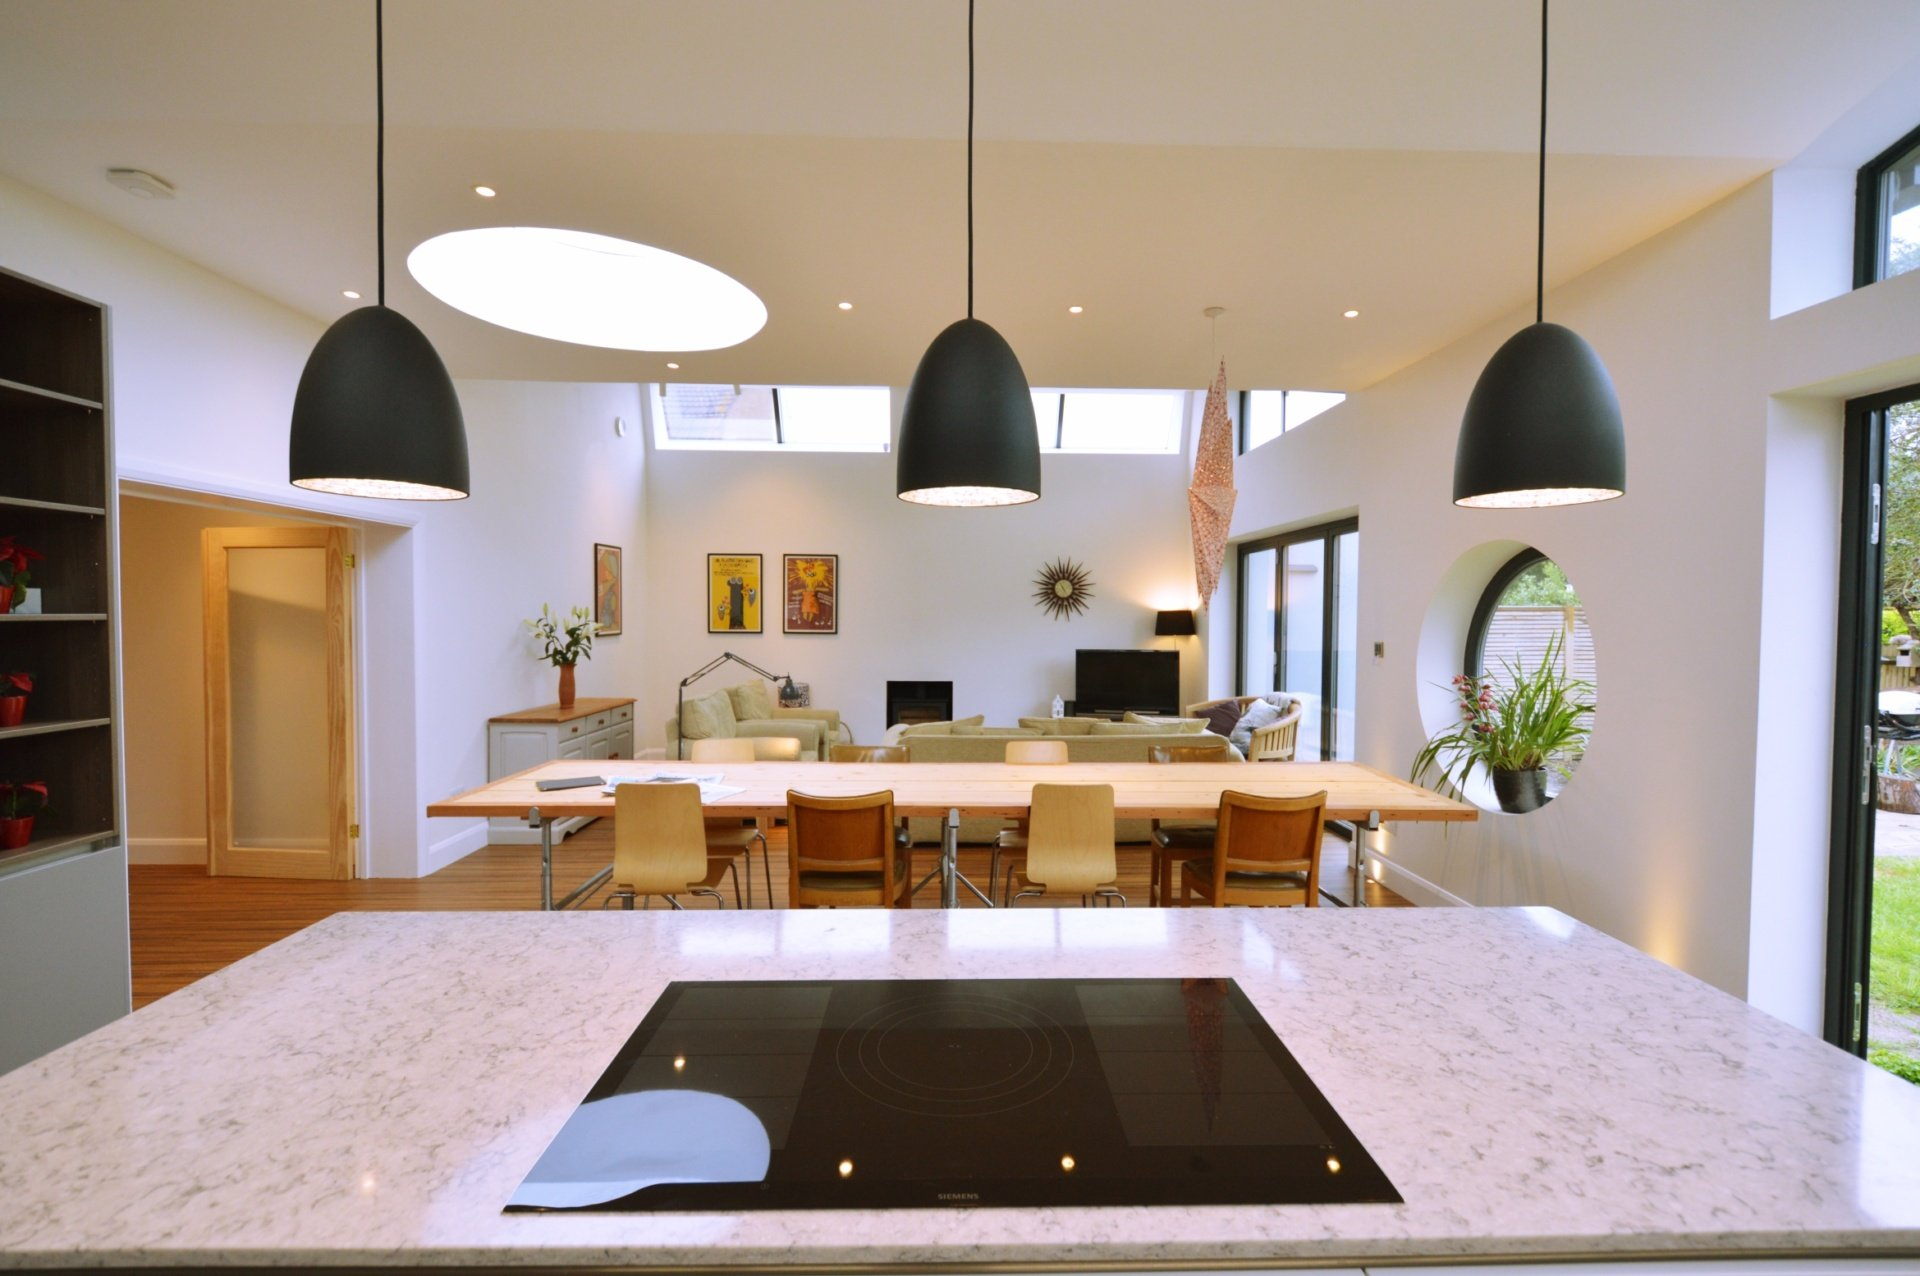 Architect designed residential extension Stoneleigh KT17 – View from kitchen area Kitchen extensions London | Home design